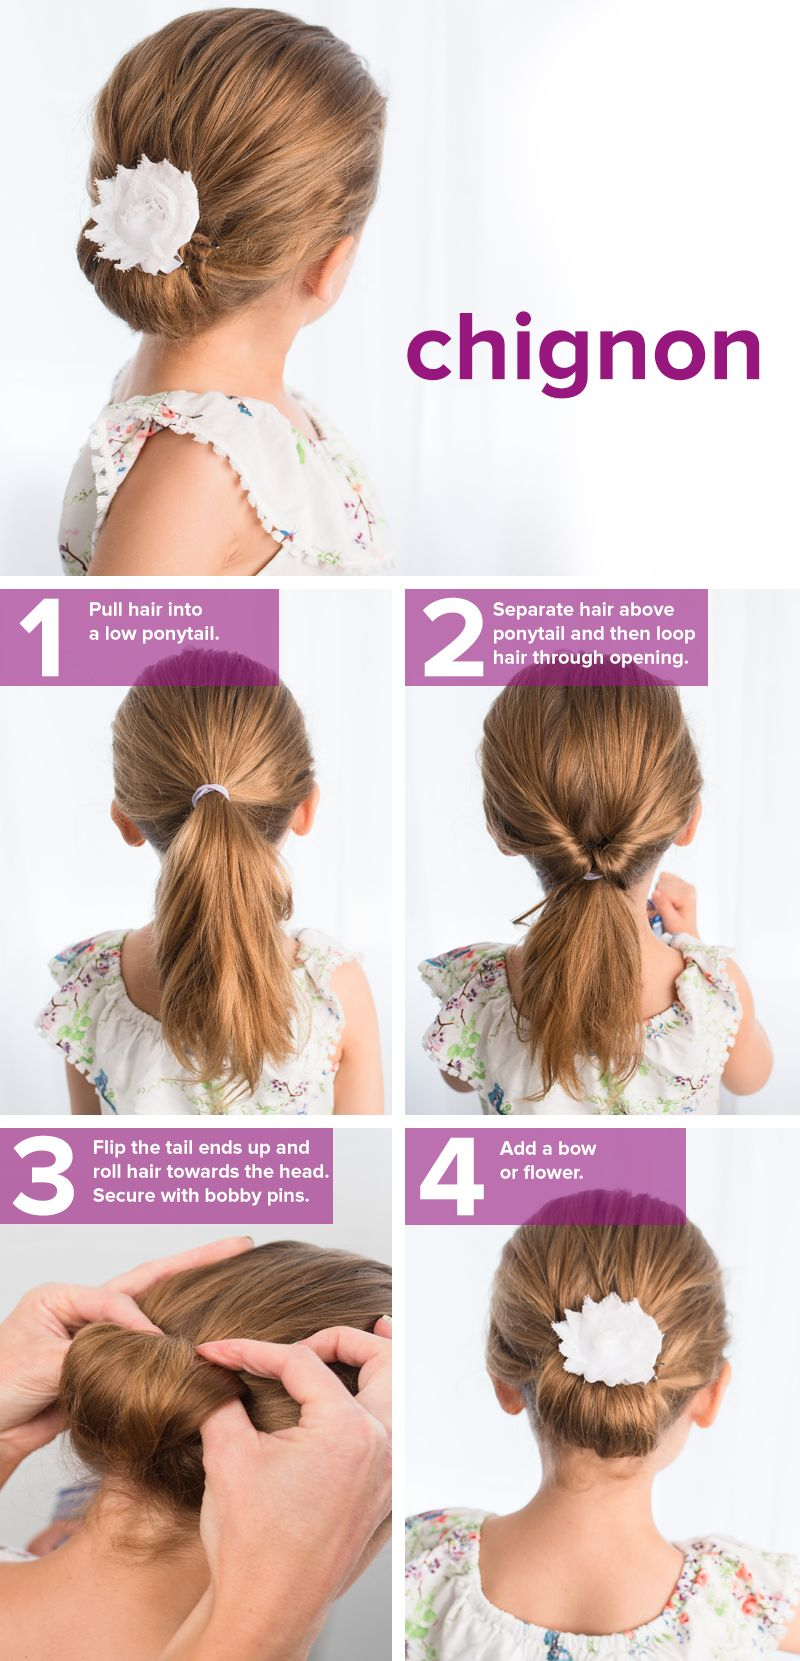 Quick Hairstyles For Long Hair Amusing 5 Fast Easy Cute Hairstyles For Girls  Pinterest  Chignon Hair